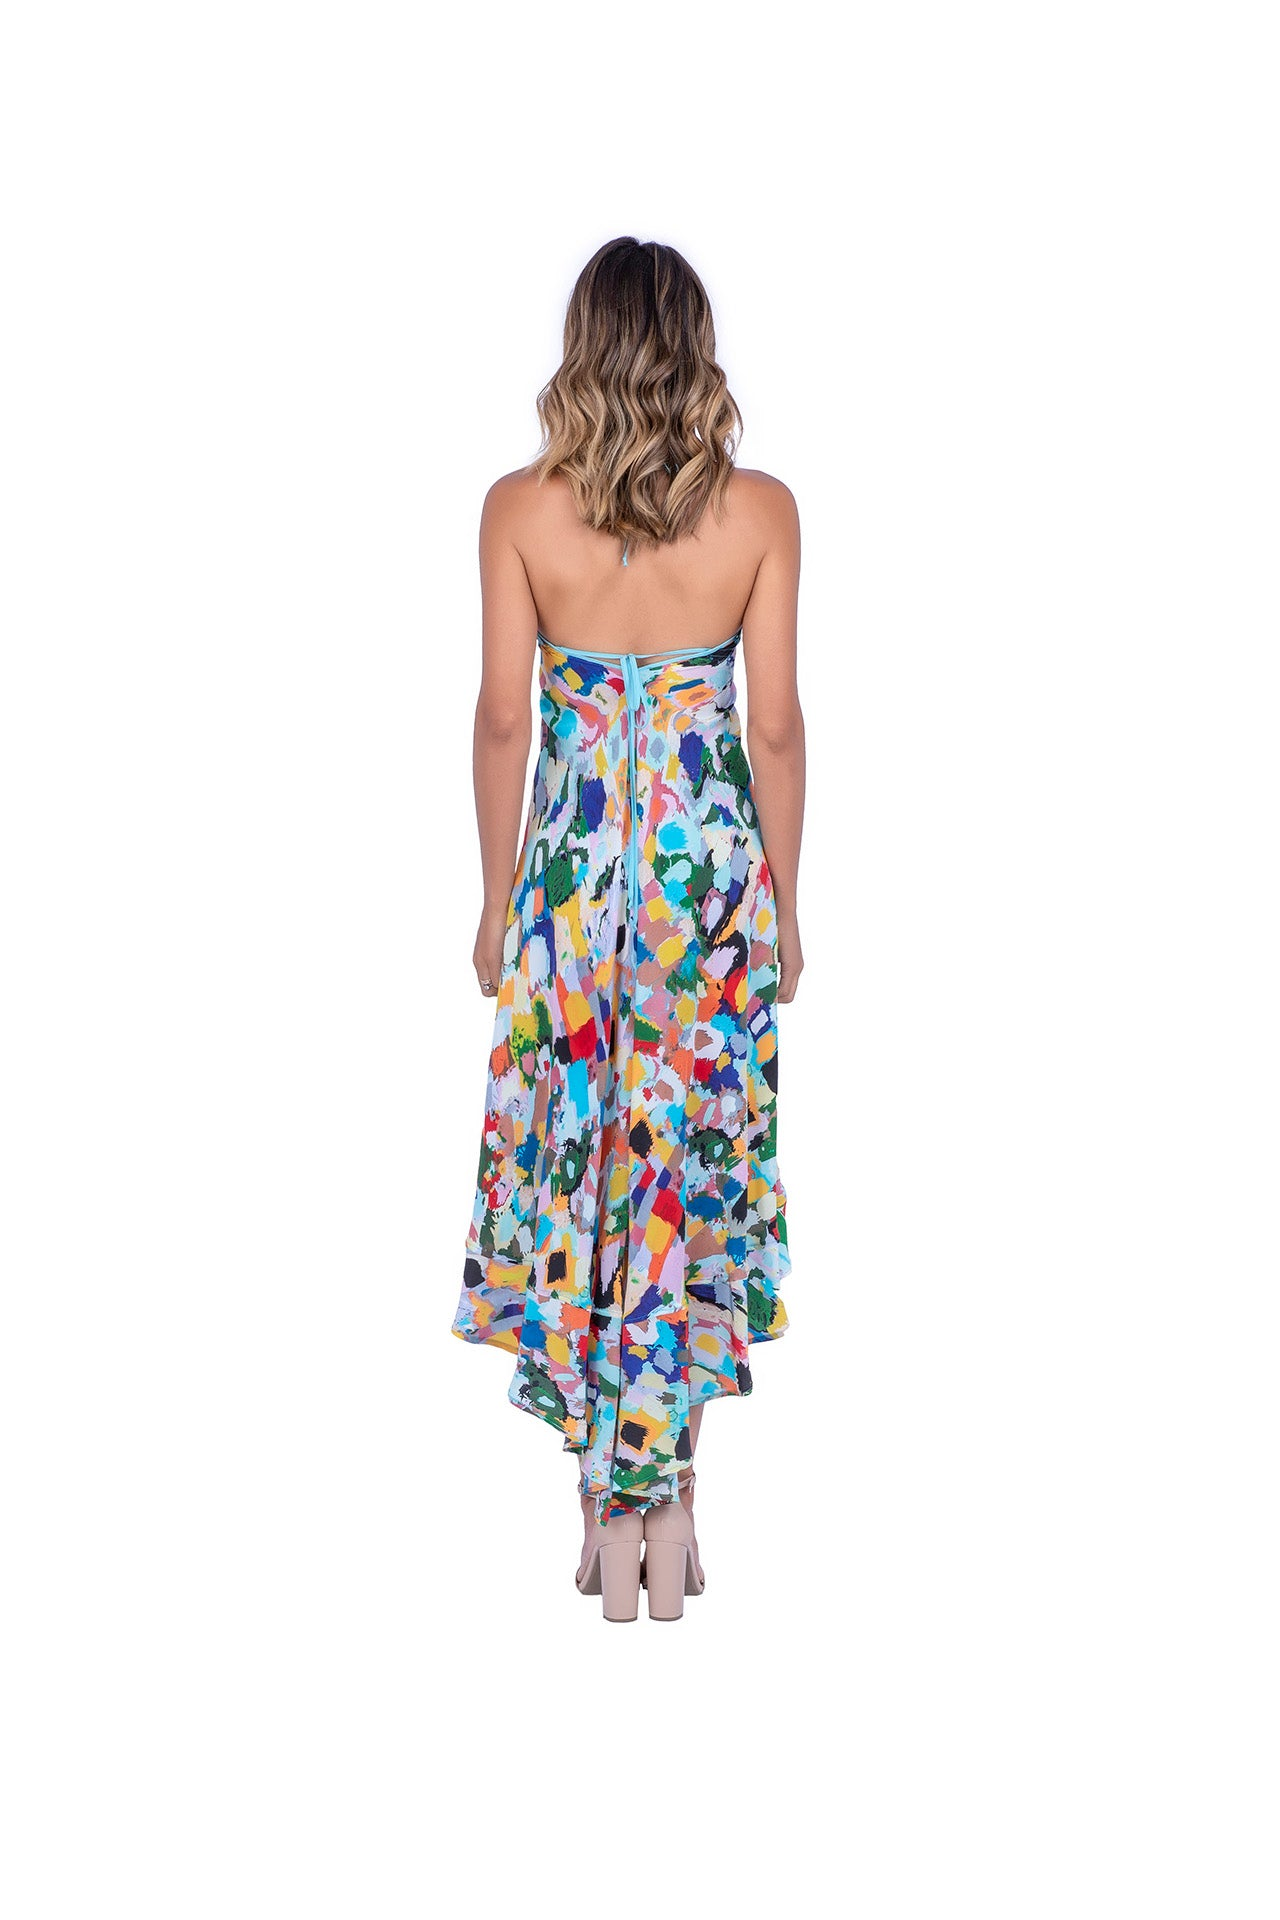 Vivo Silk Dress - Color Brushstroke Print Dresses - artTECA